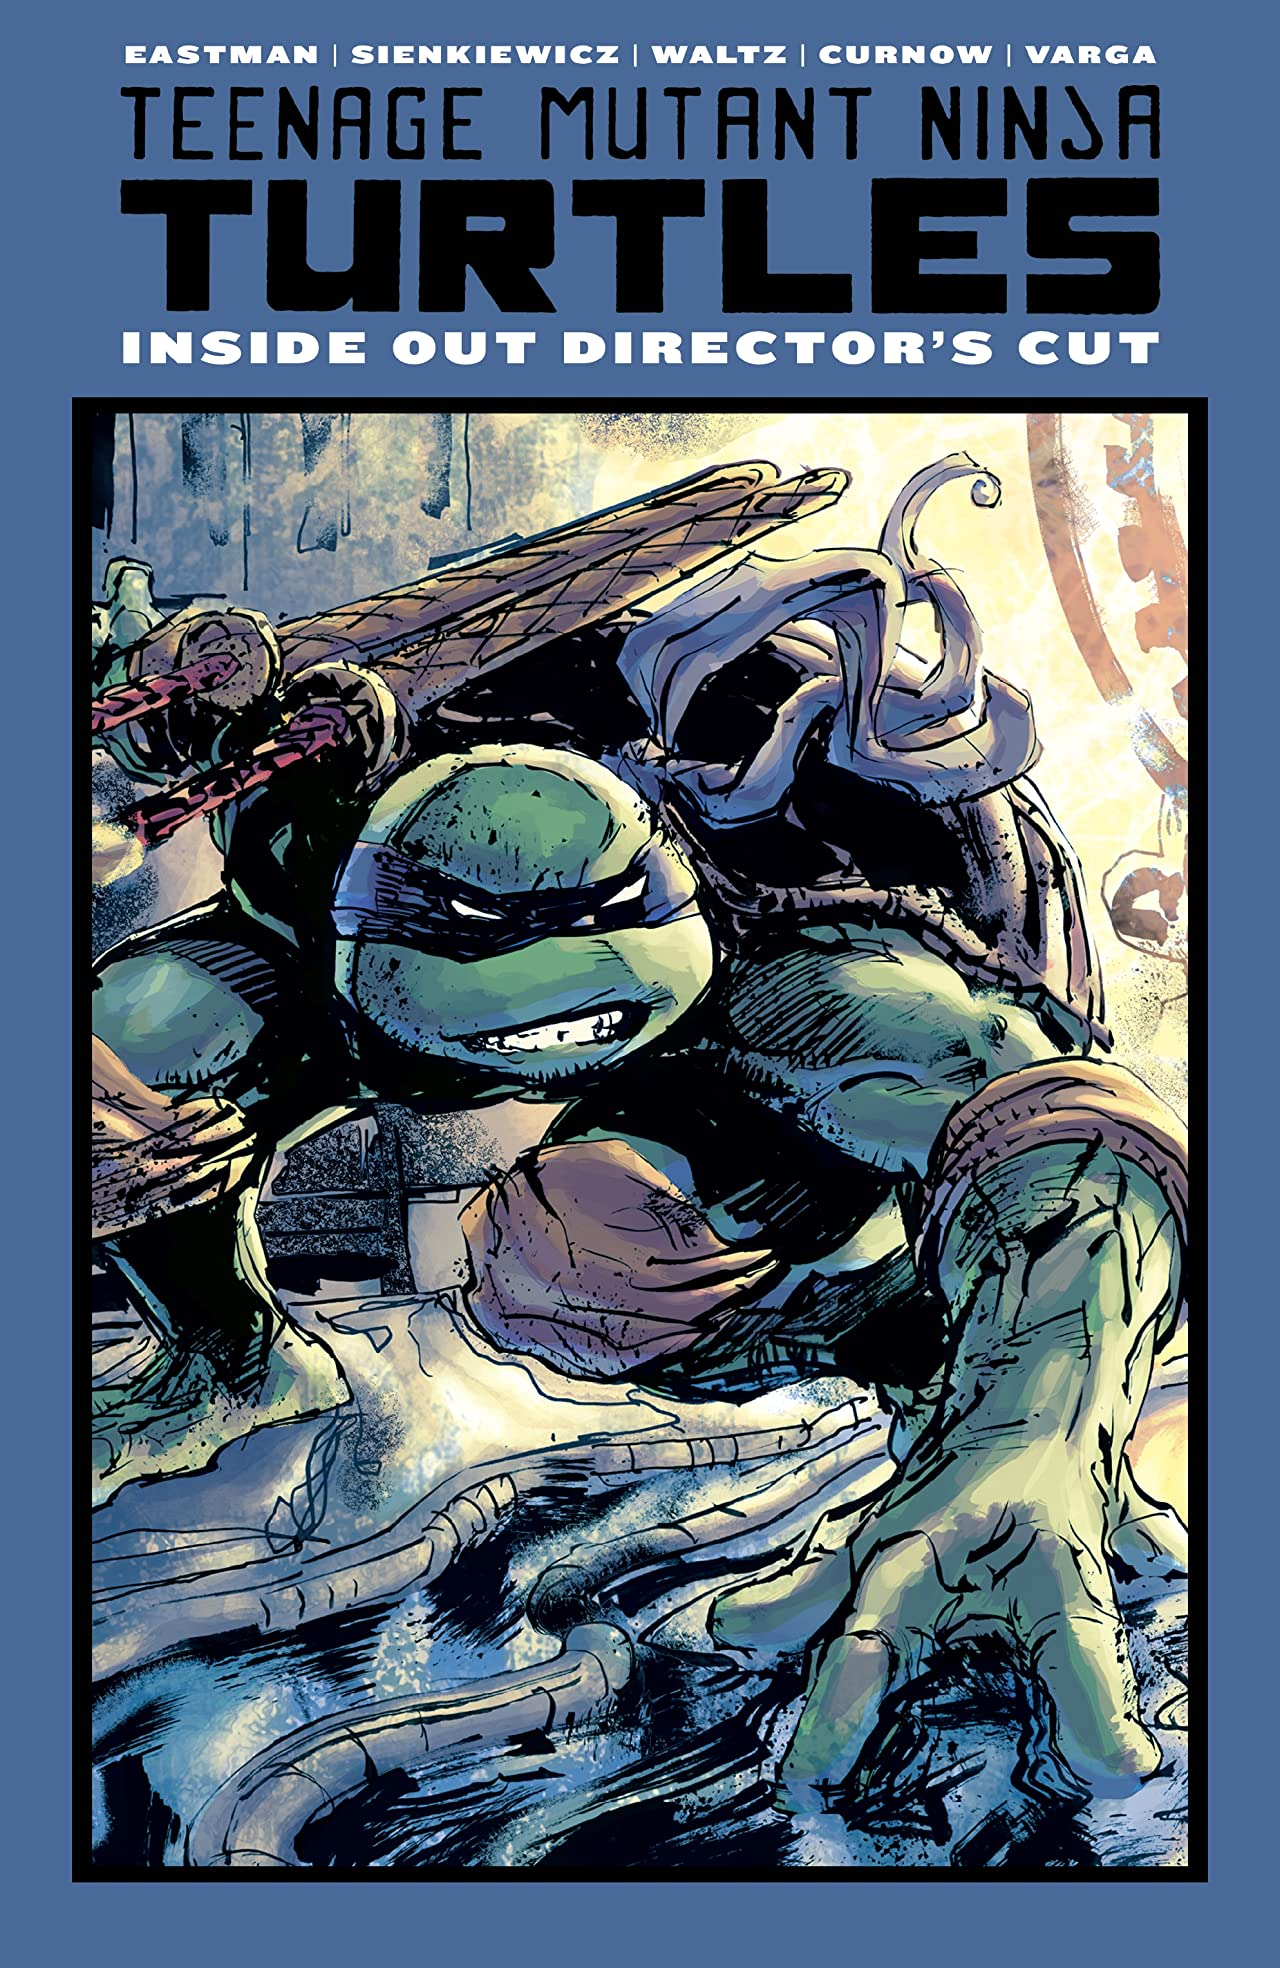 Teenage Mutant Ninja Turtles: Inside Out Director's Cut